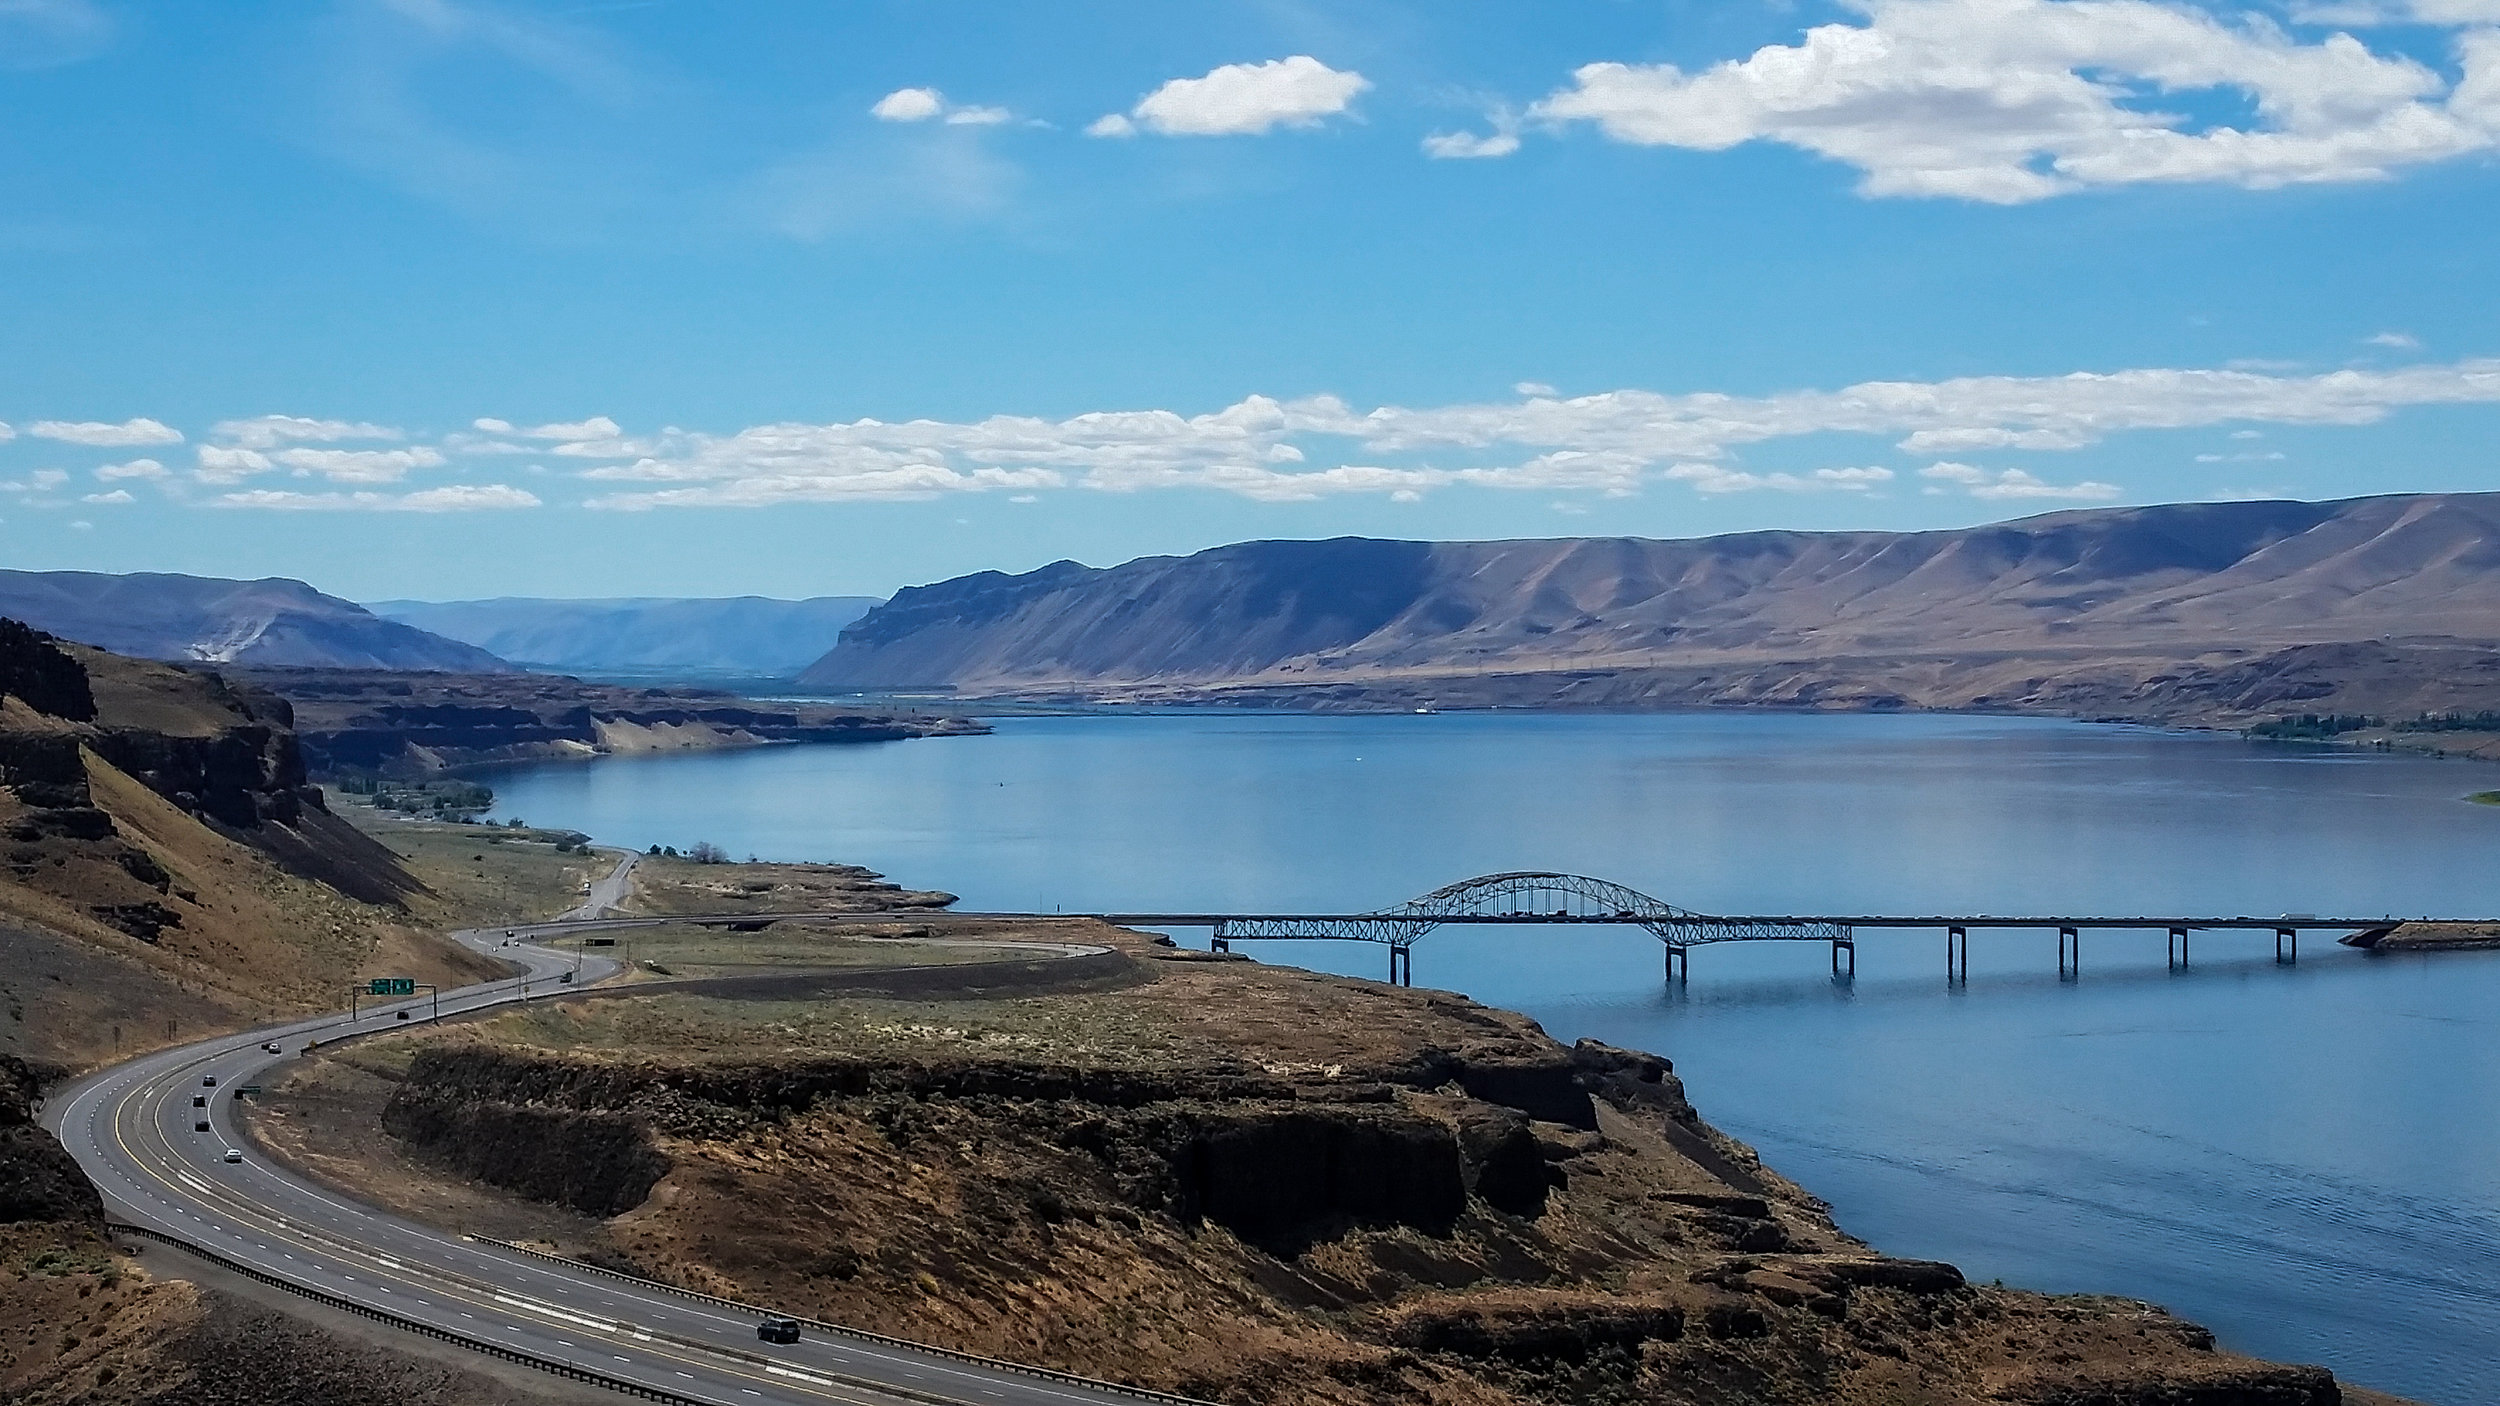 Wanapum Lake, a dam-engorged section of the Columbia River.